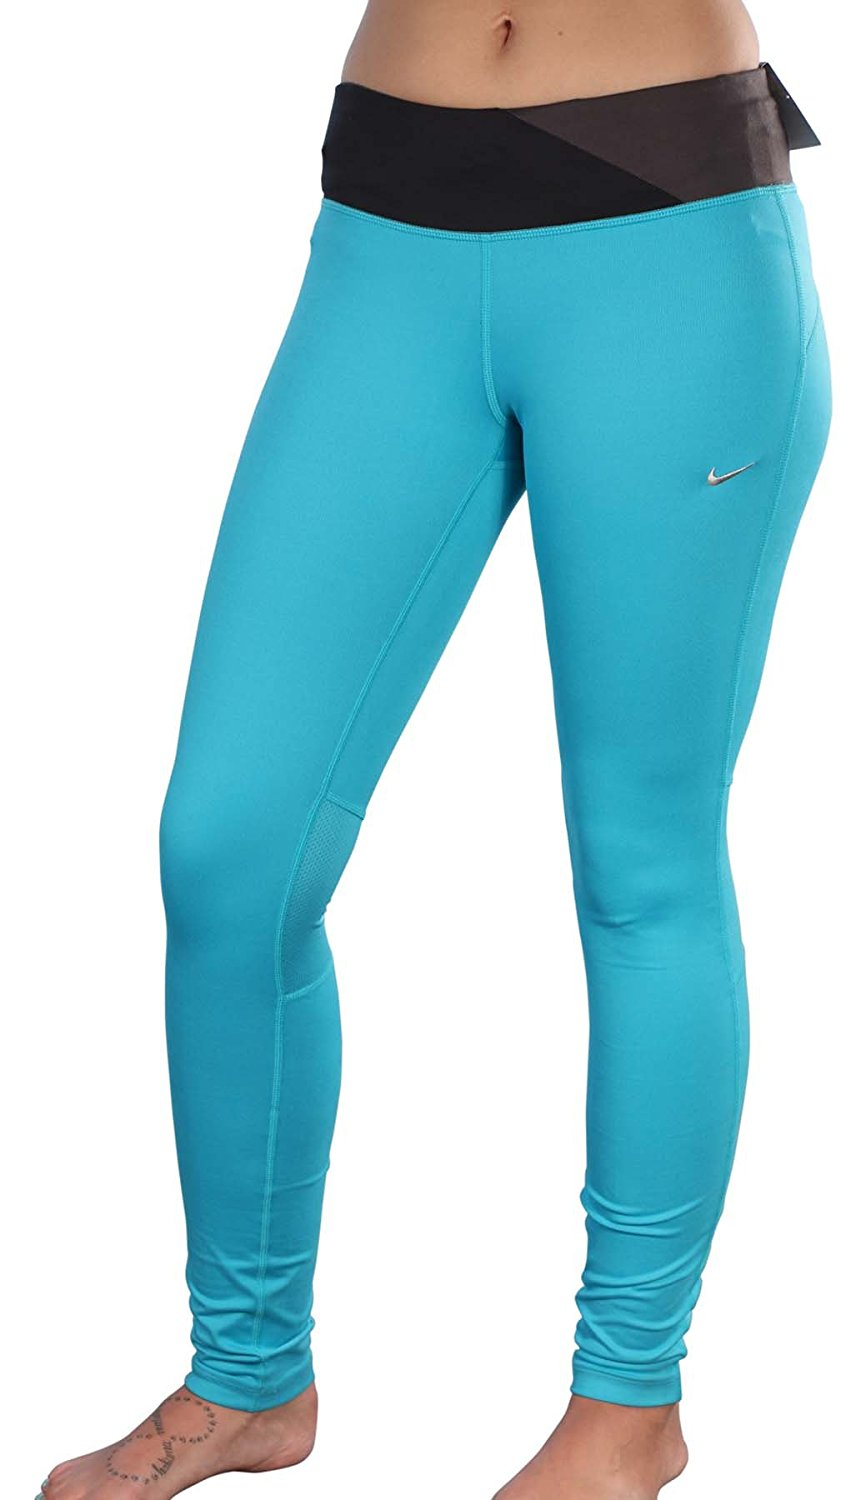 4dad0d55fdc0 Get Quotations · Nike Women s Dri-Fit Epic Running Tight Fit Pants-Jade